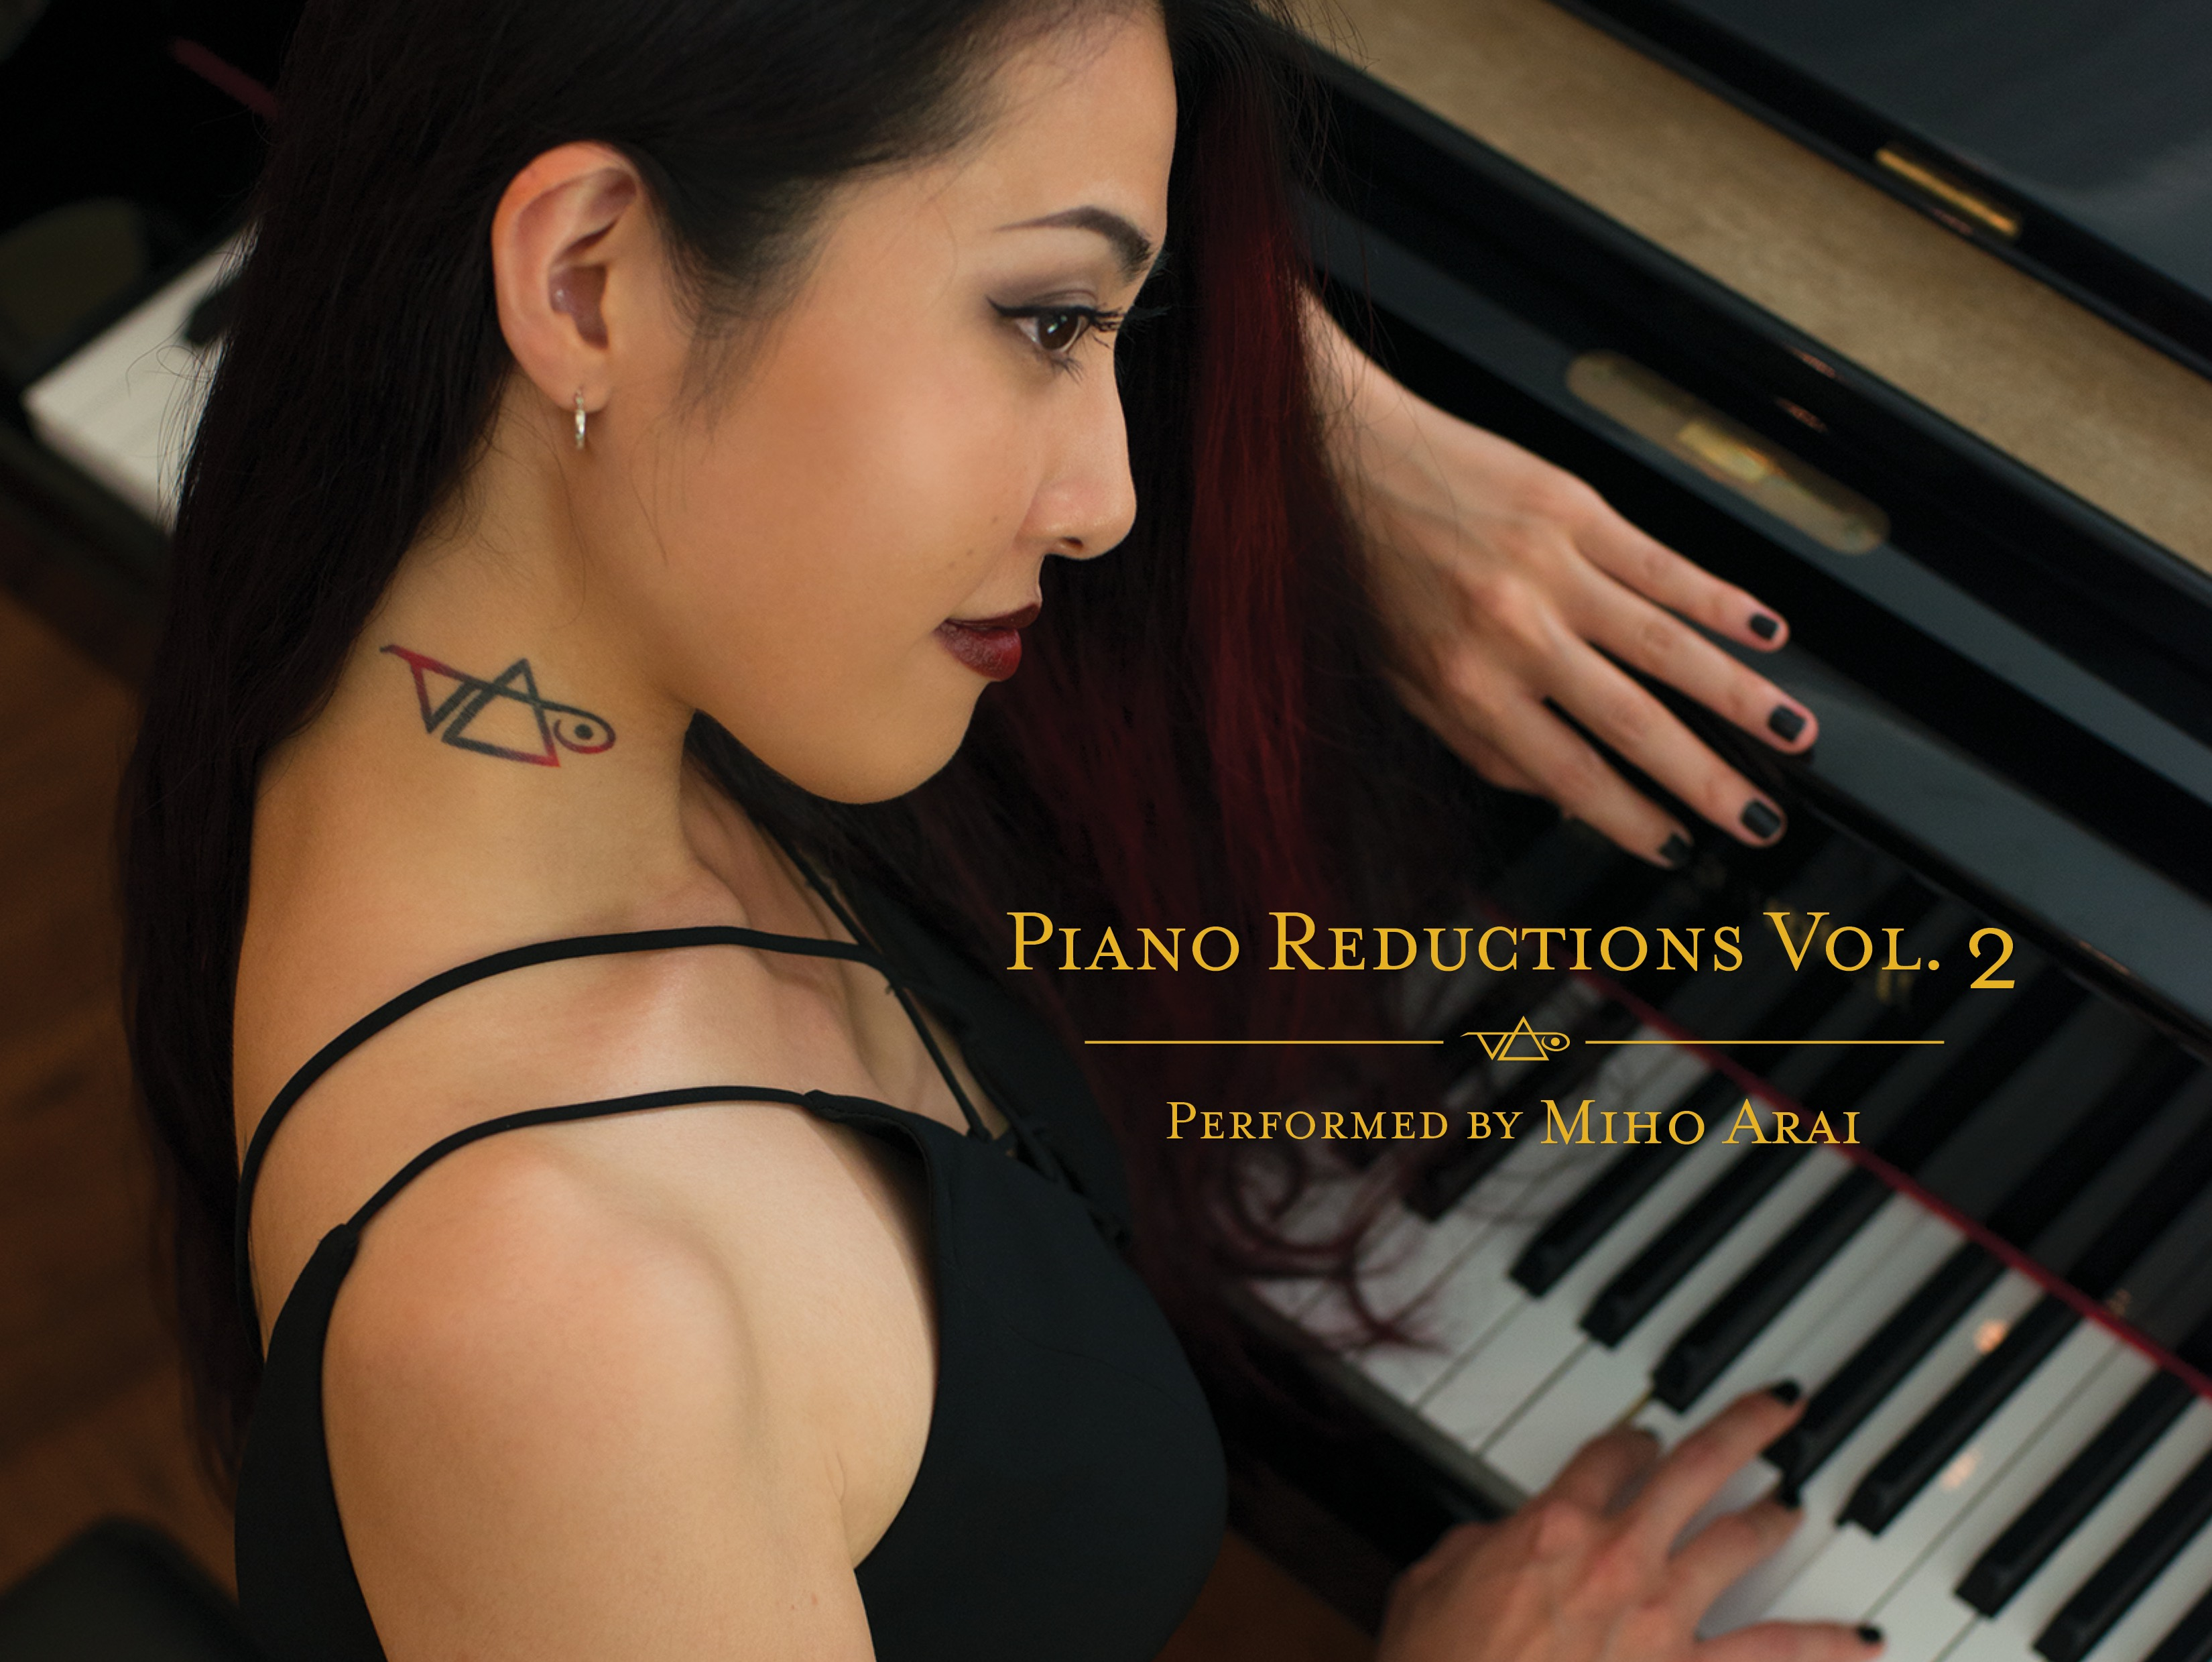 Piano Reductions Vol. 2